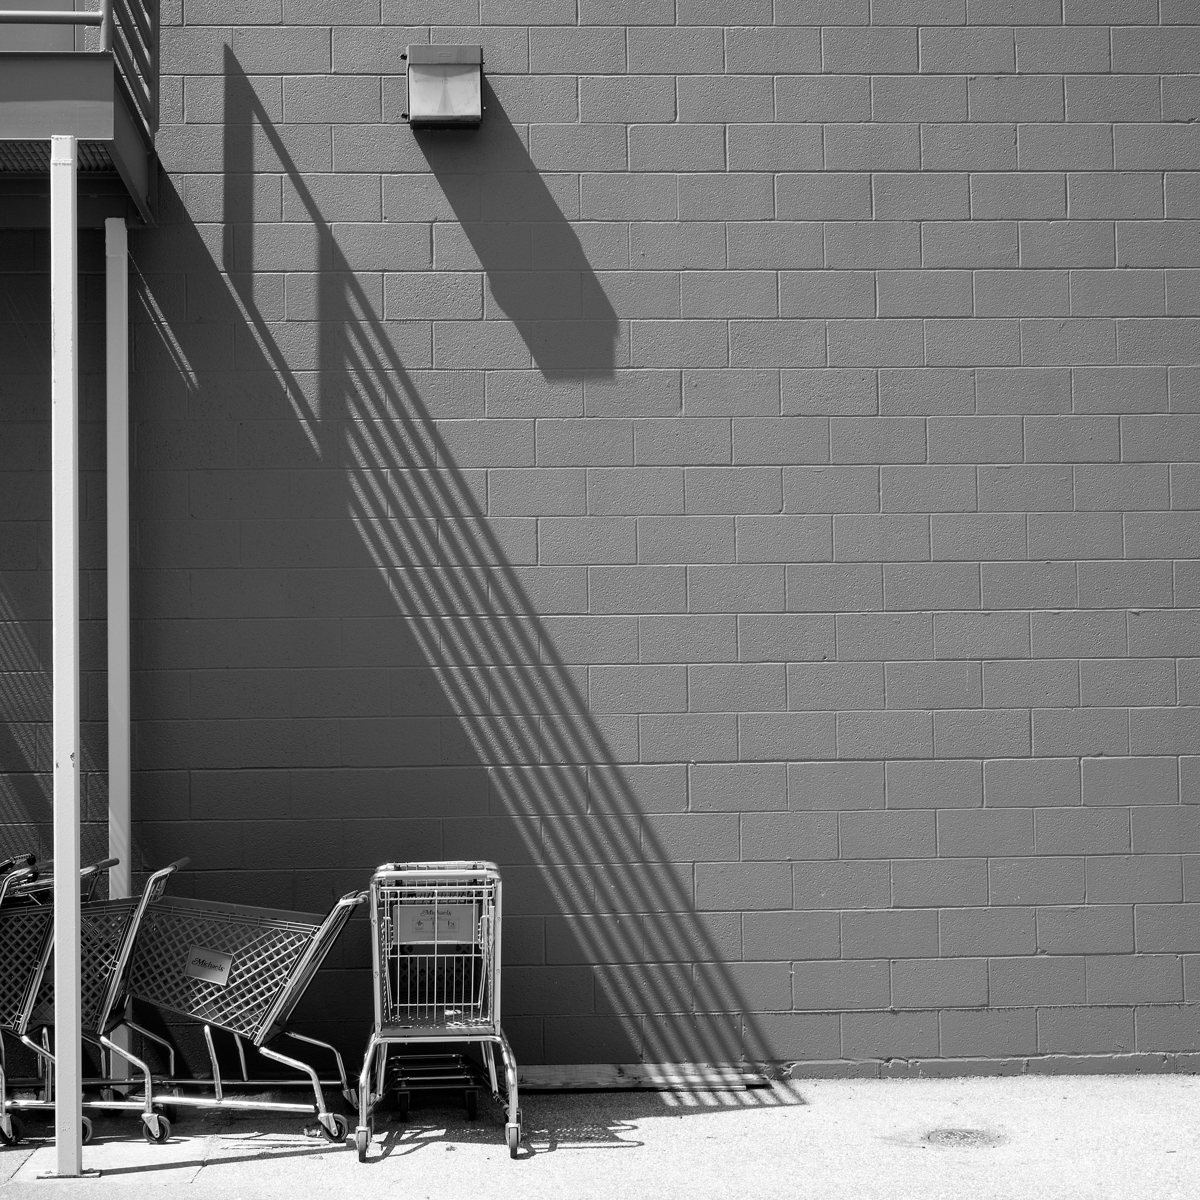 Shopping Carts, Mechanicsburg, Pennsylvania (large view)